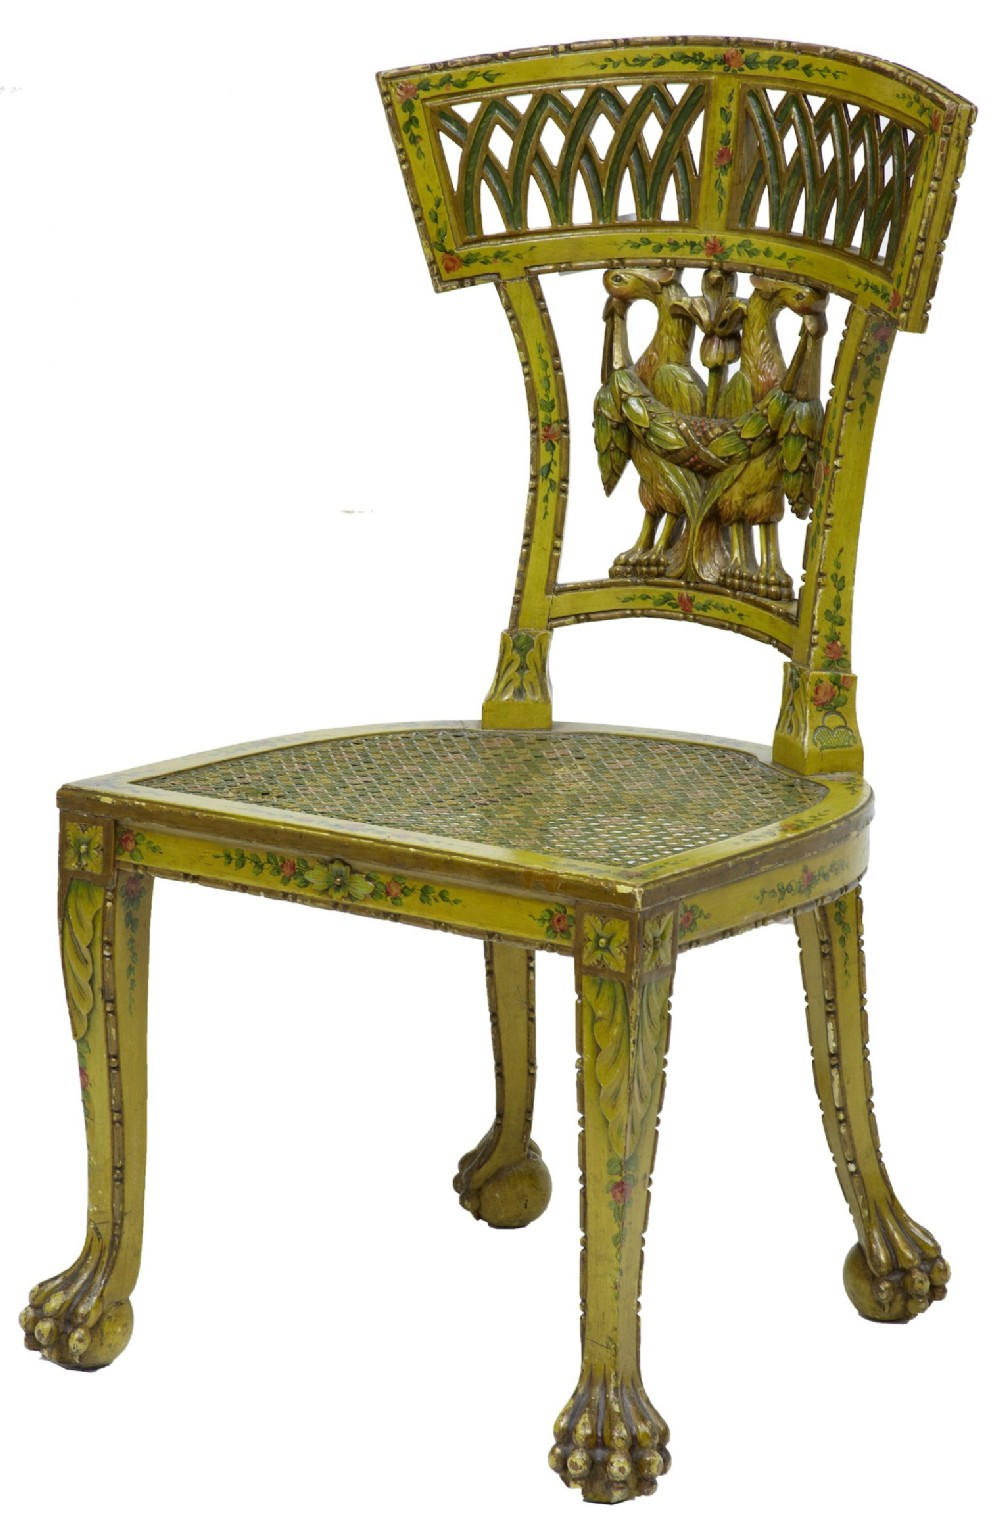 Early 19th Century Carved Painted Biedermeier Cane Seat